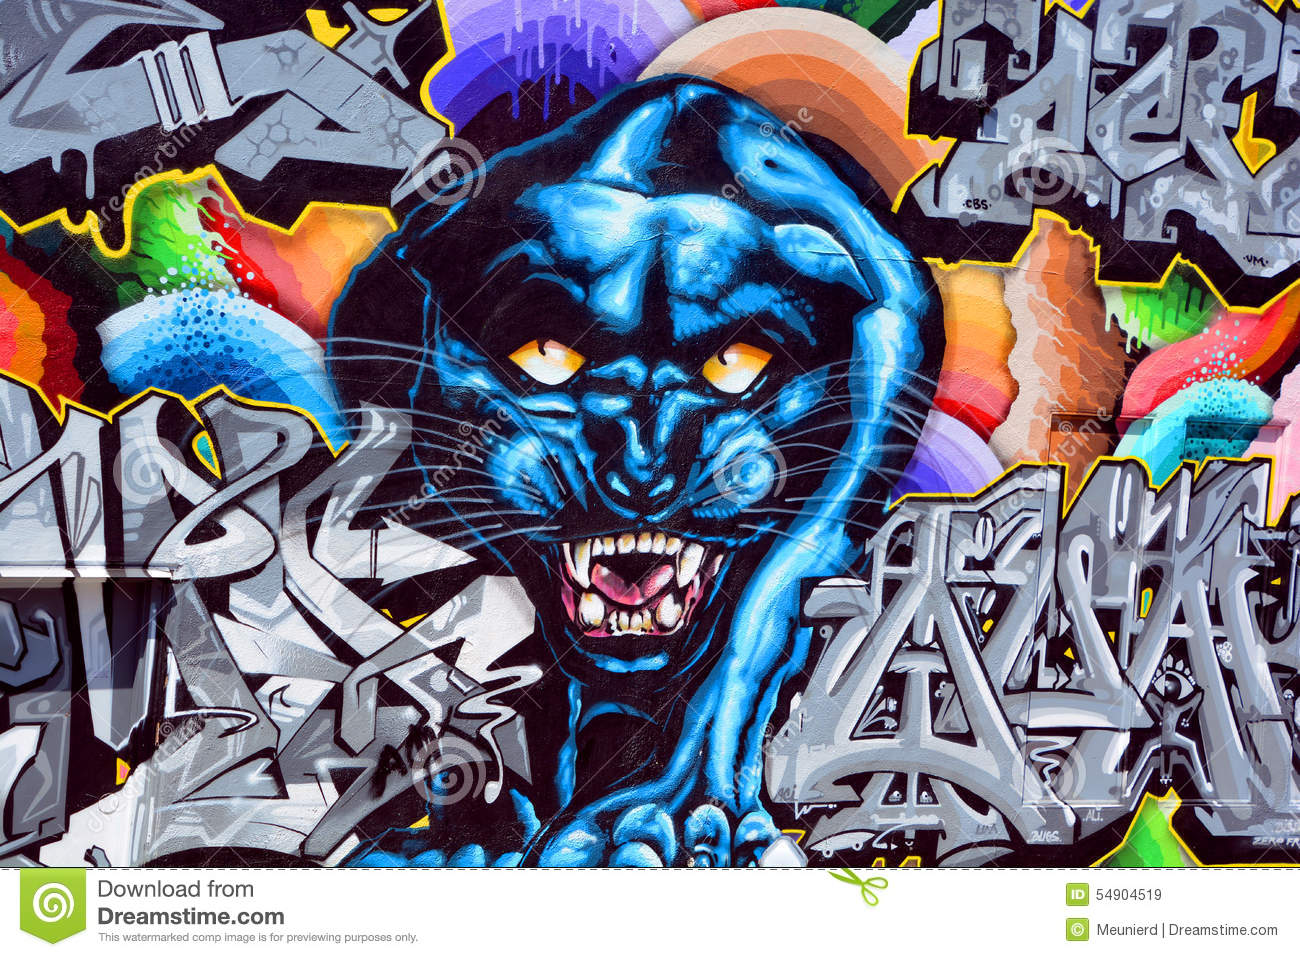 Black panther mural editorial stock image image of for Black panther mural